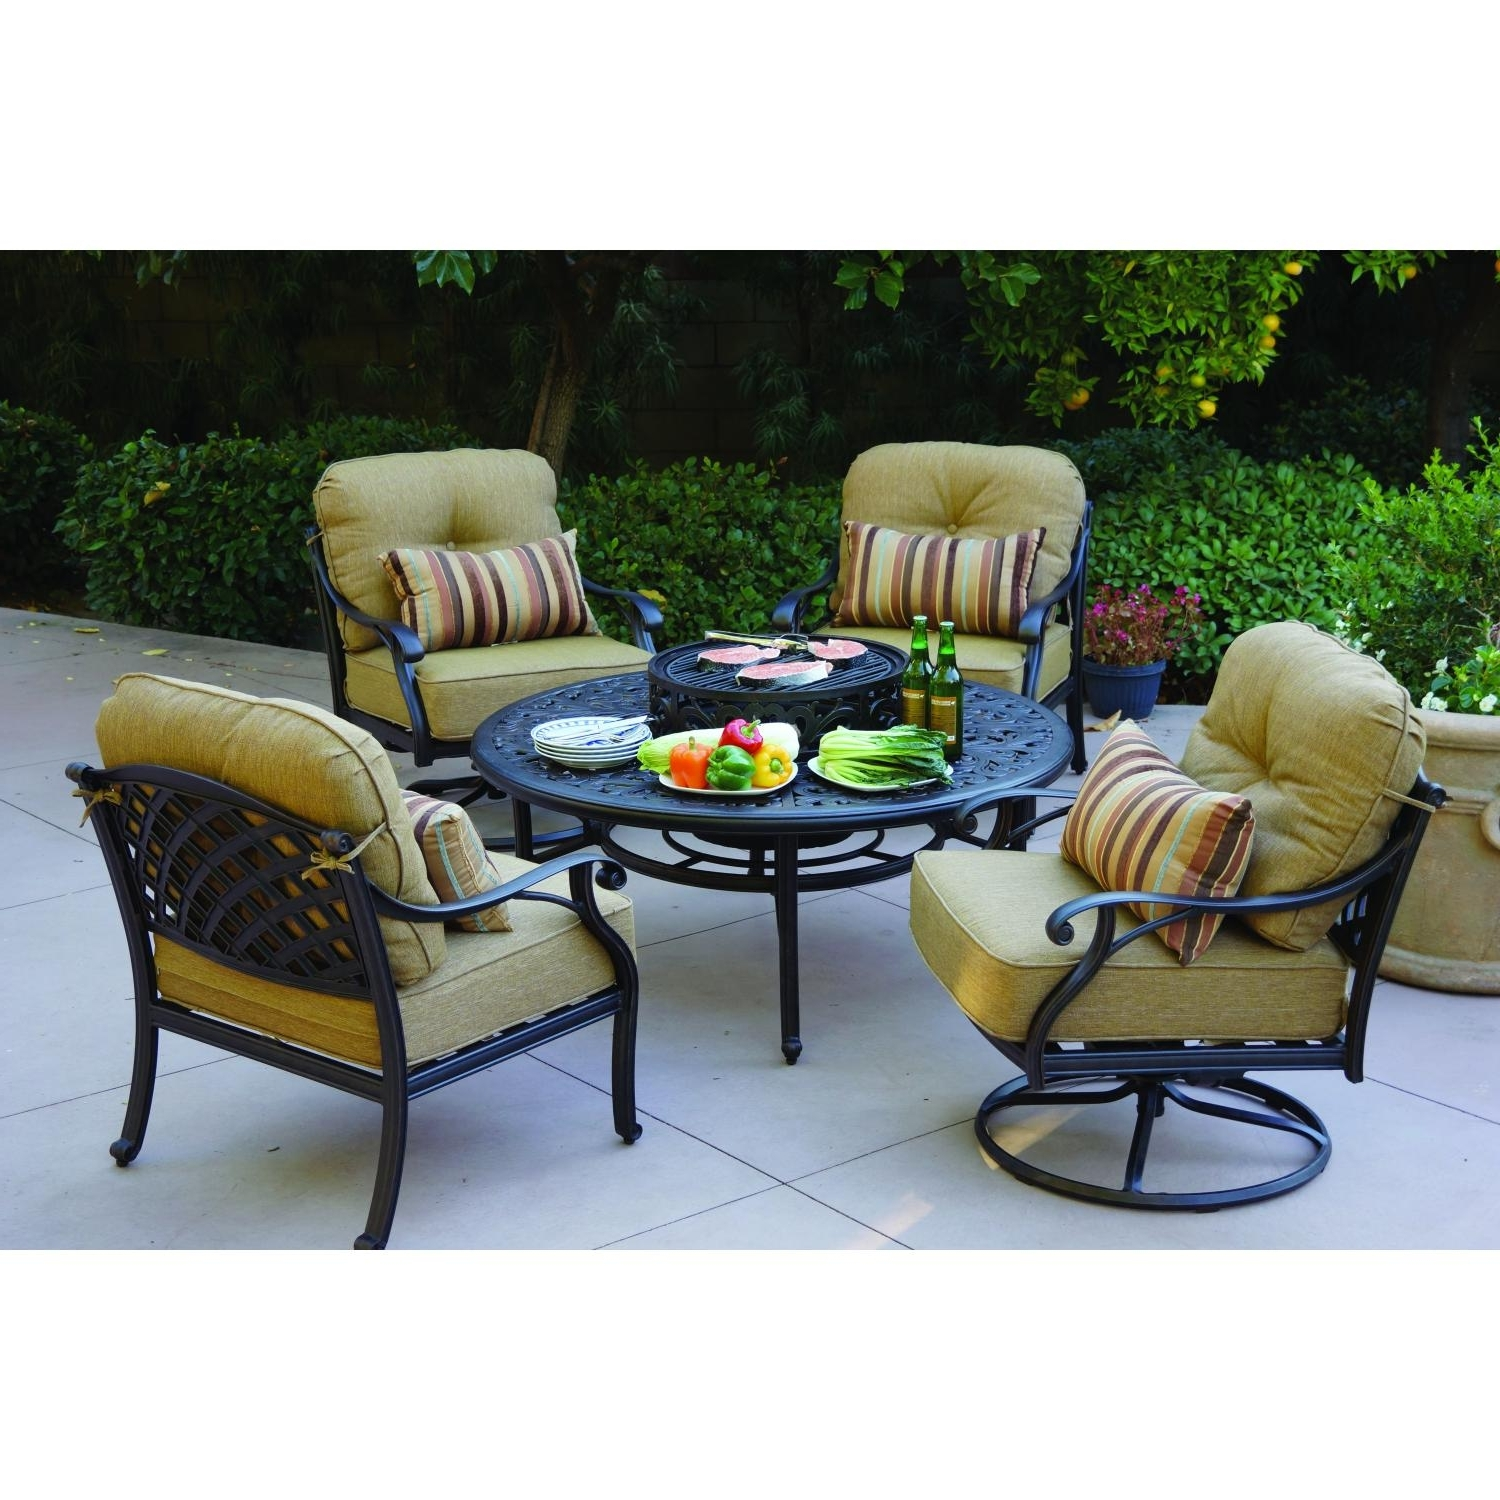 2019 Beautiful Round Propane Fire Pit Table And Chairs Conversation Sets Intended For Round Patio Conversation Sets (View 2 of 20)